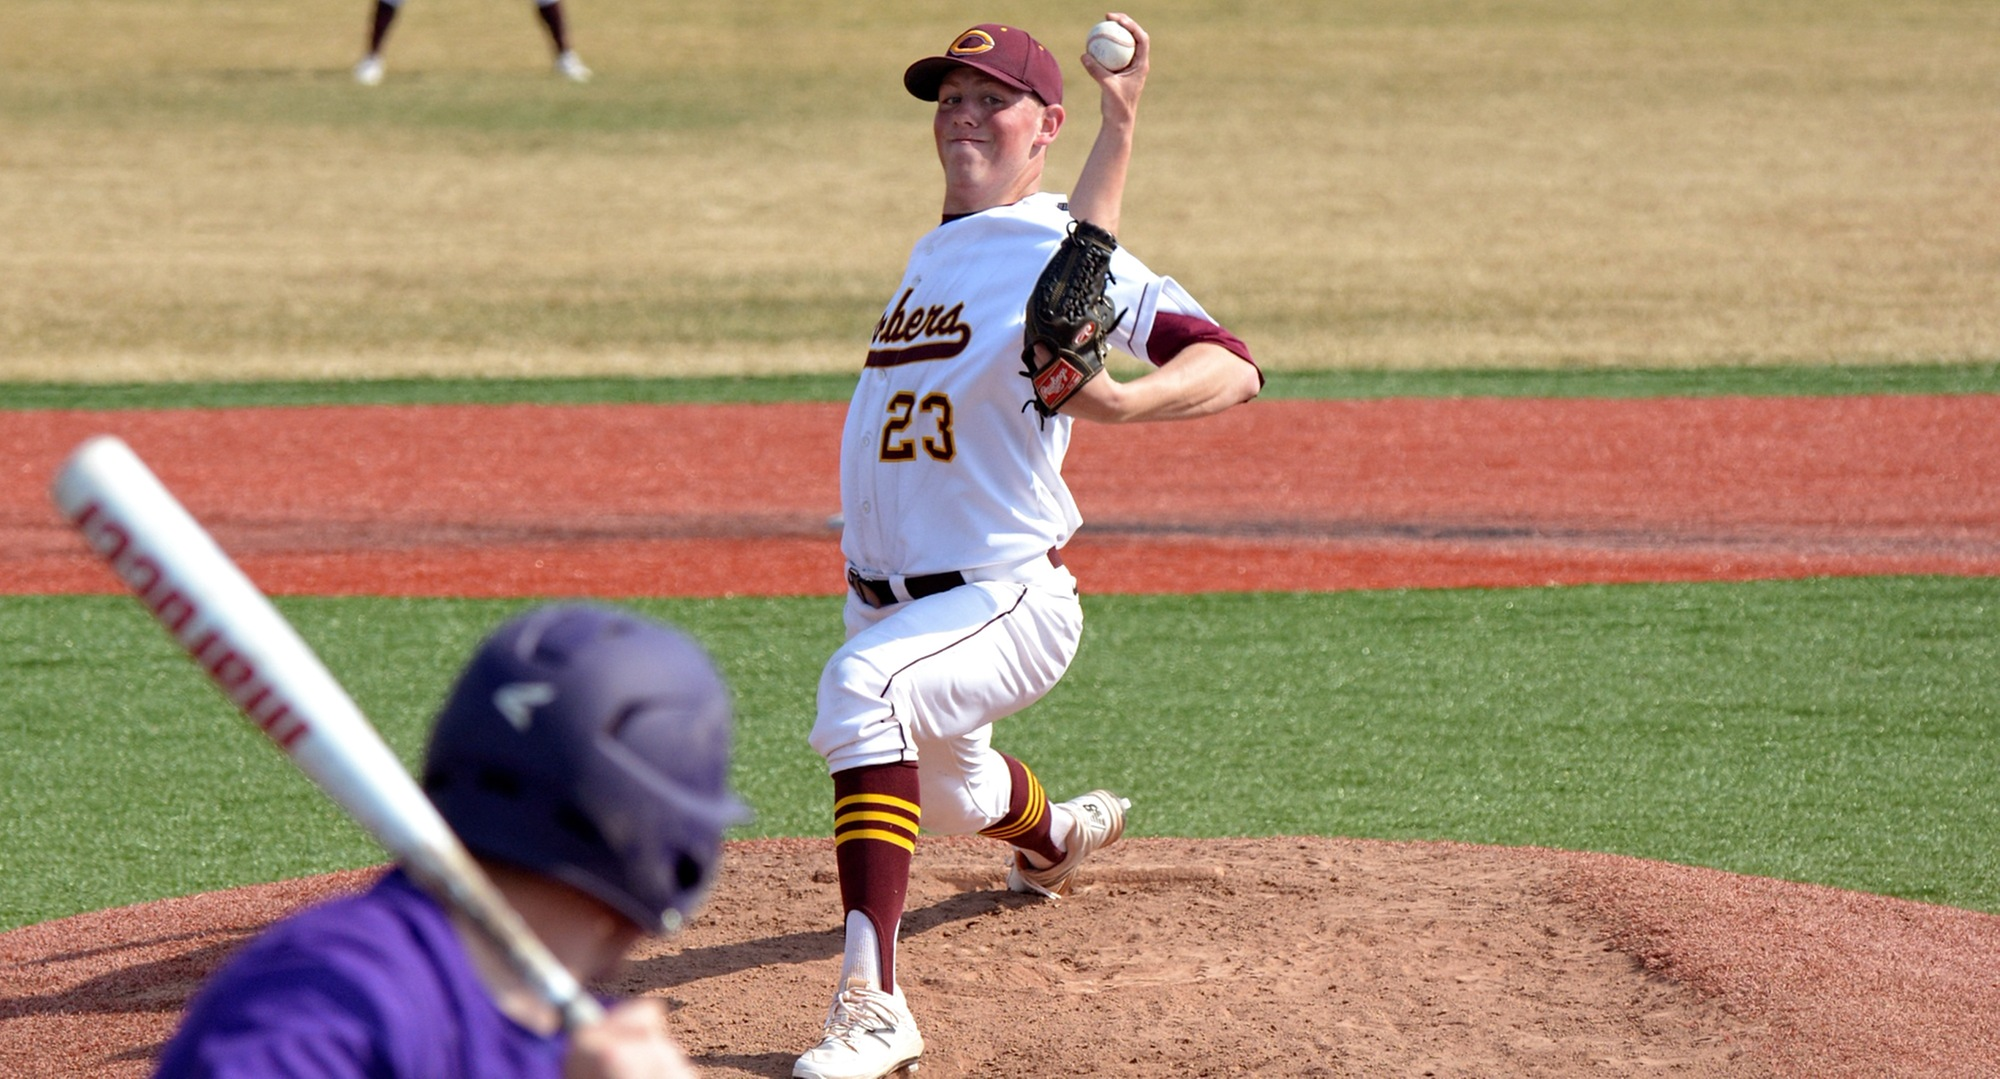 Cole Christensen pitched a complete-game four hitter and retired the final 11 batters he faced in the Cobbers' split at Hamline.